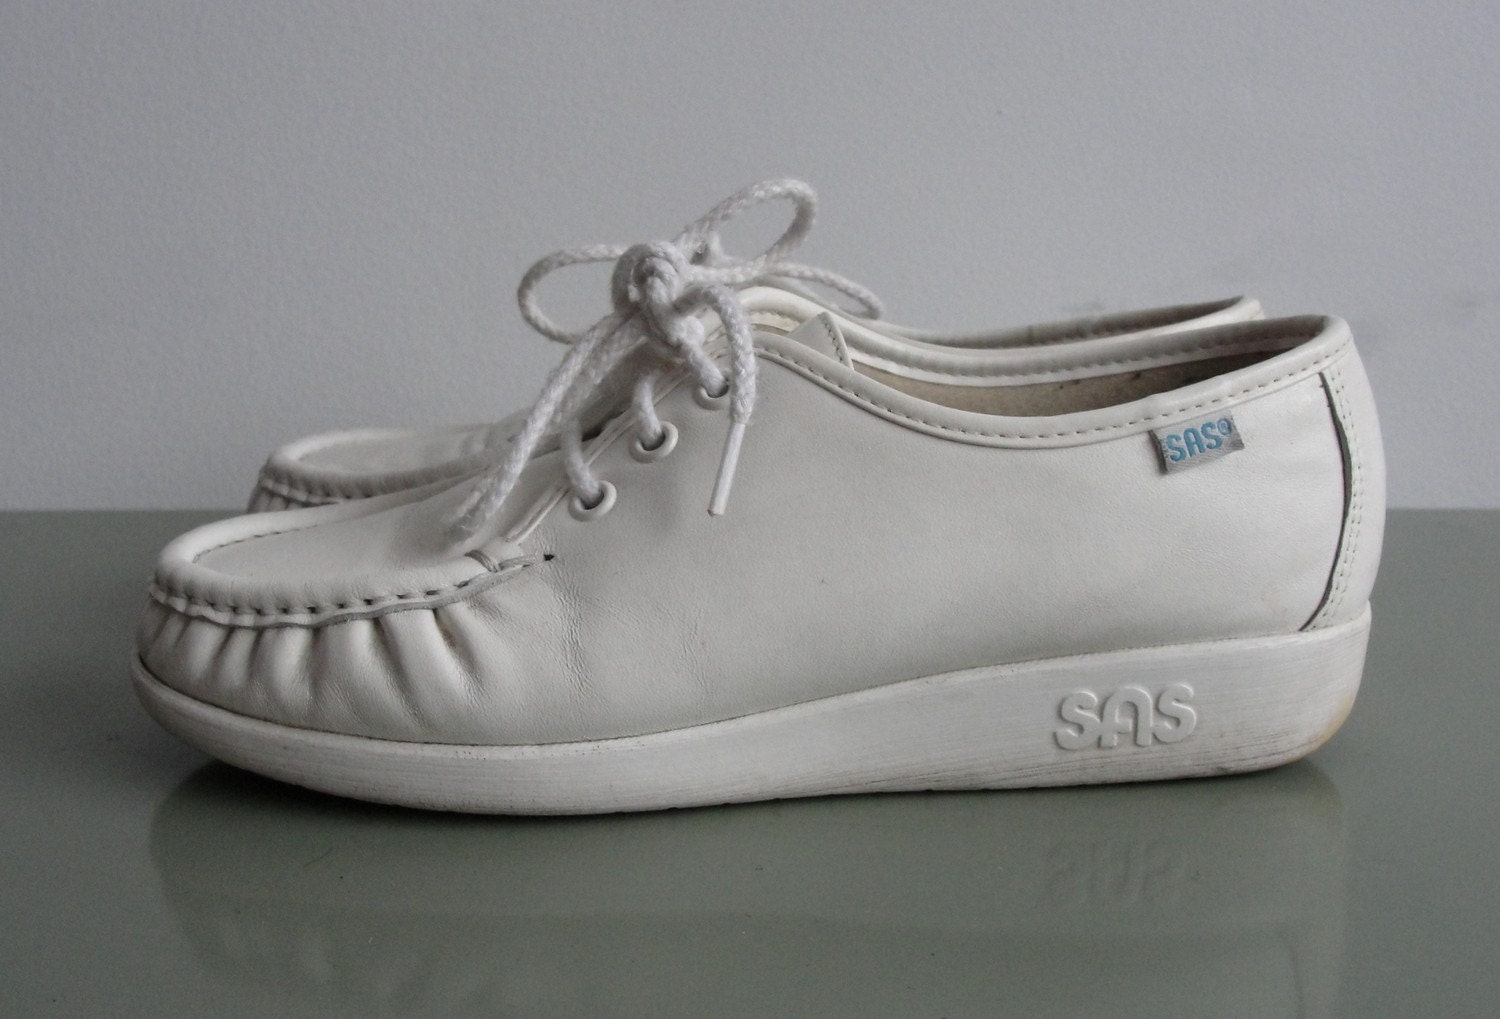 Sas White Nursing Shoes